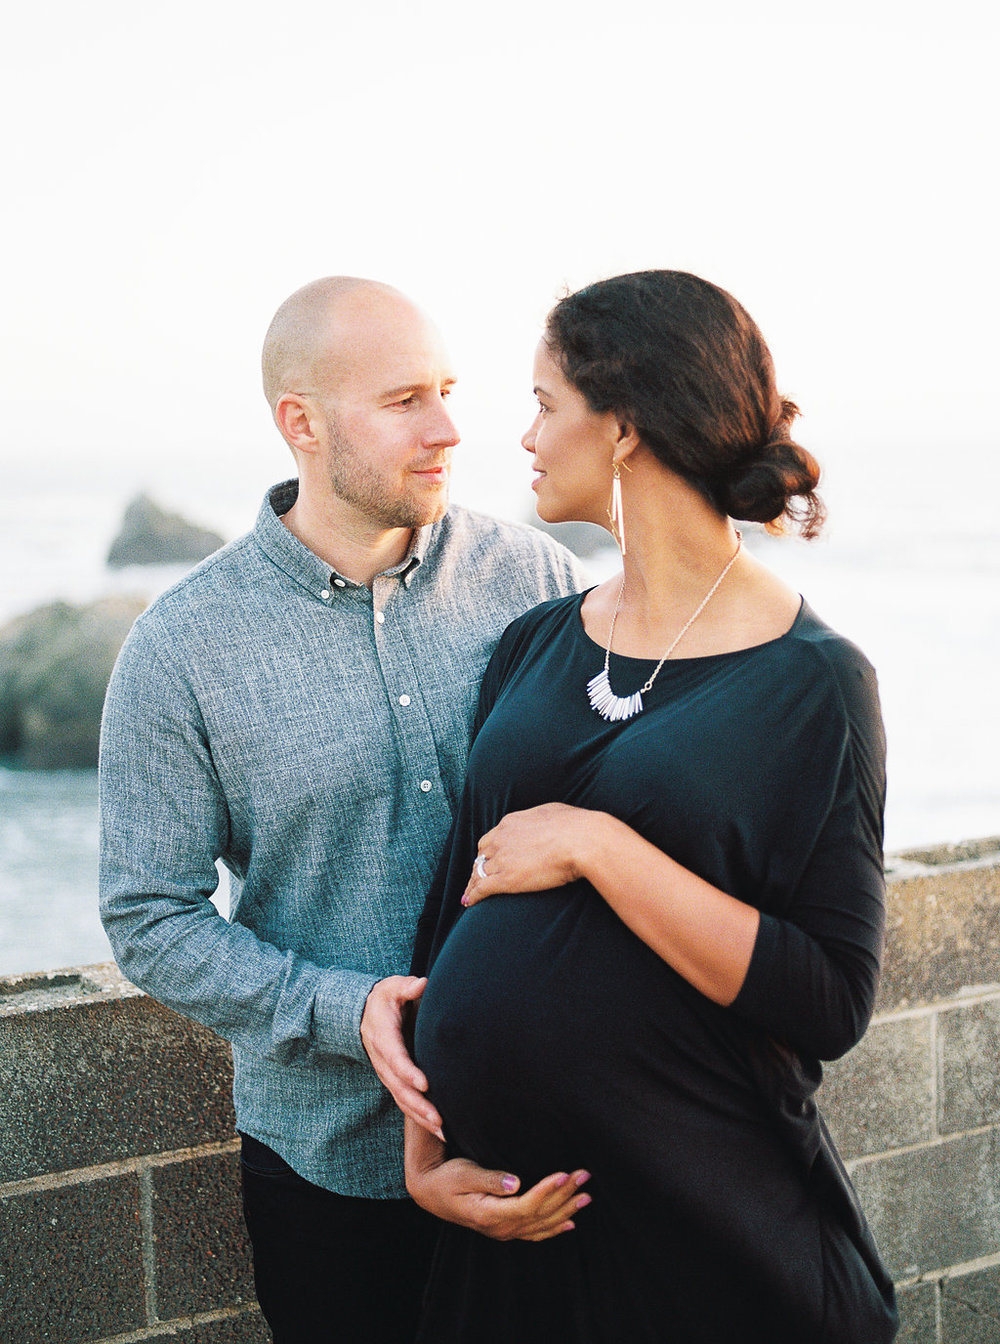 San Fransisco wedding photographer Kibogo Photographer | maternity photos in SF 7.JPG